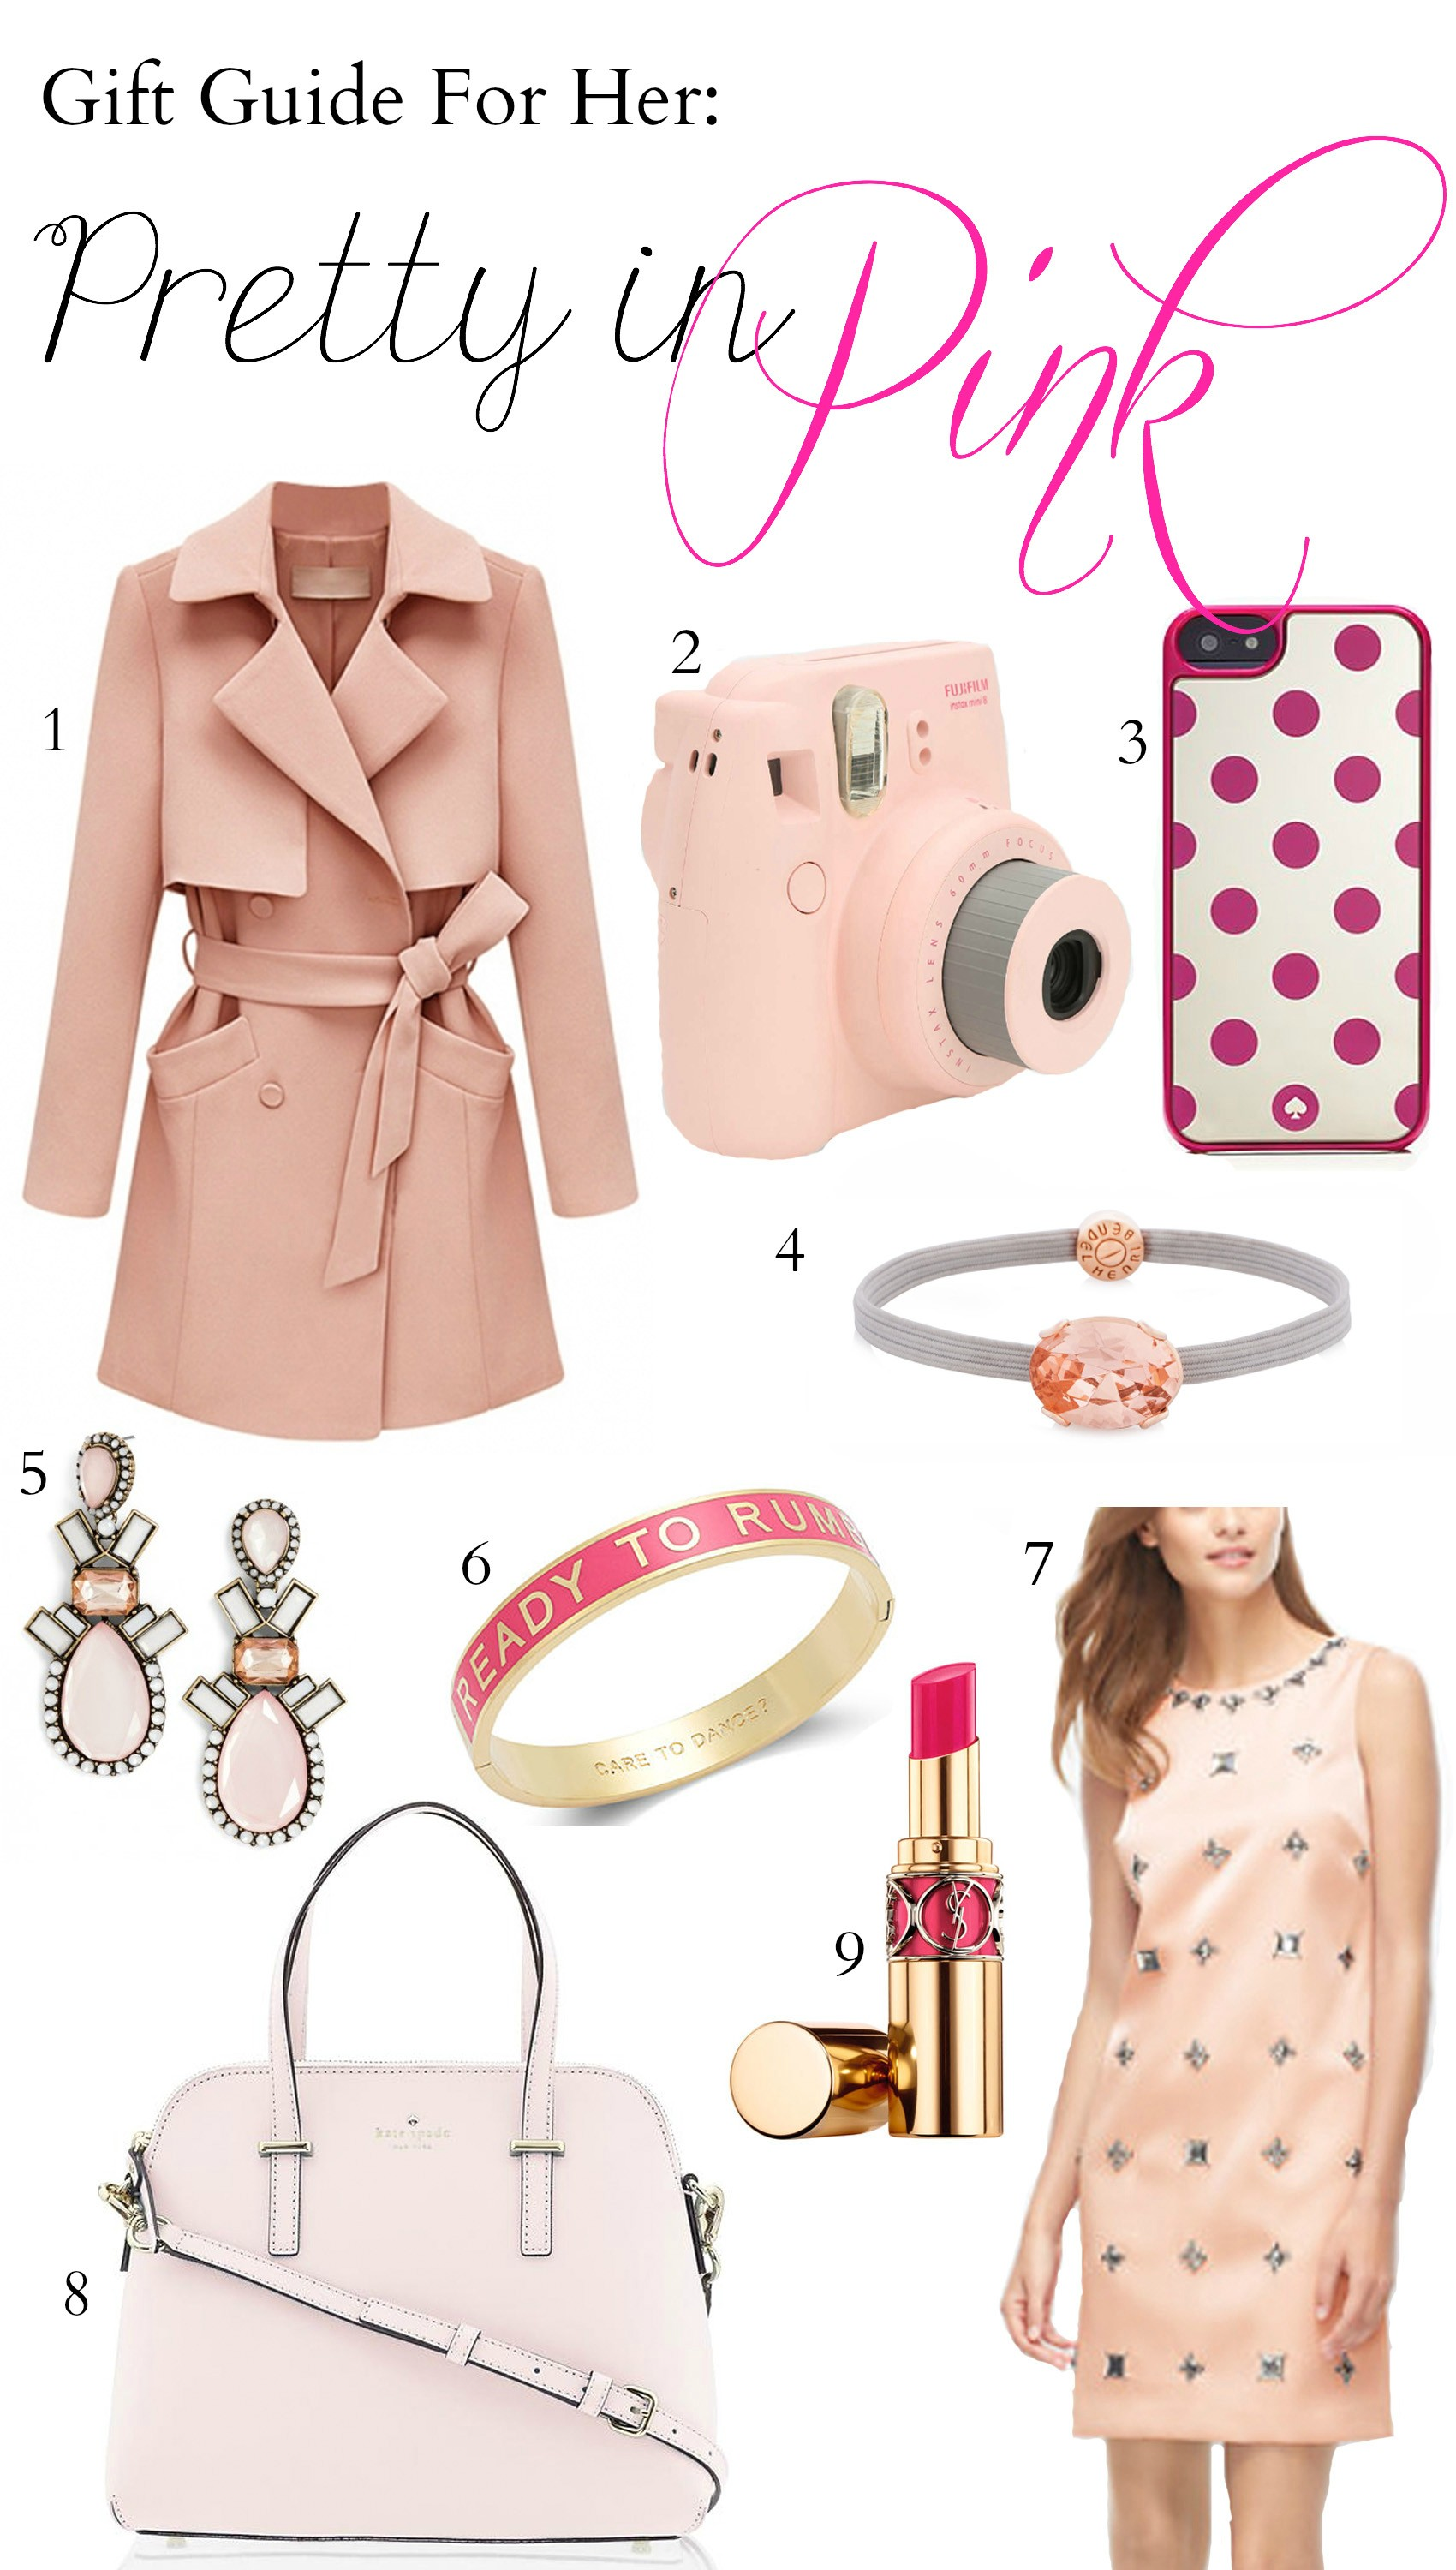 Fashion blogger Mash Elle shares gift ideas for the girl who loves all things pink!